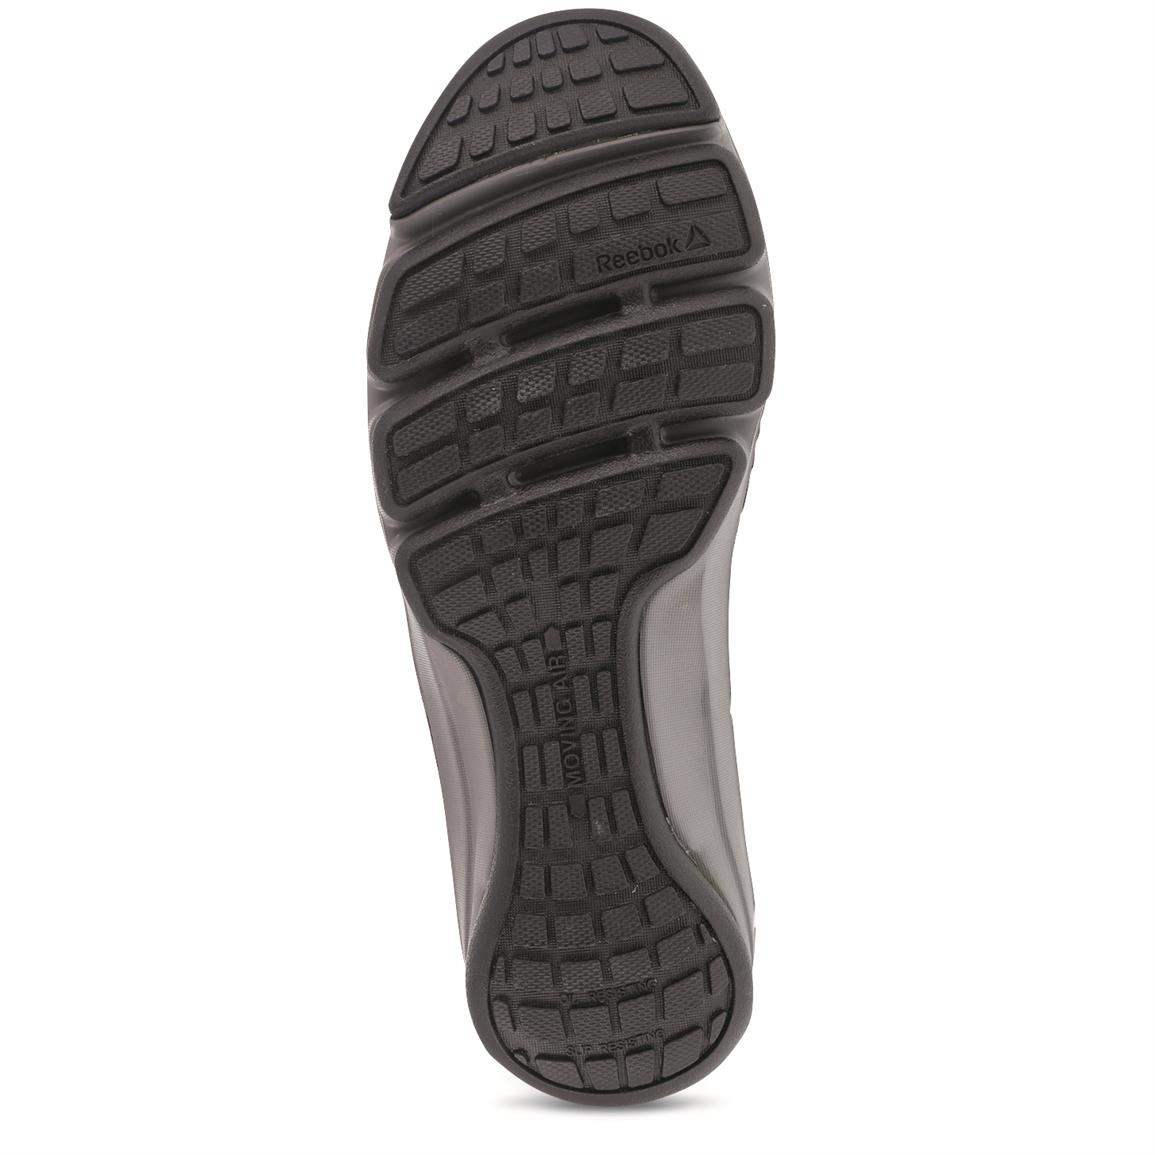 Slip-resistant rubber outsole